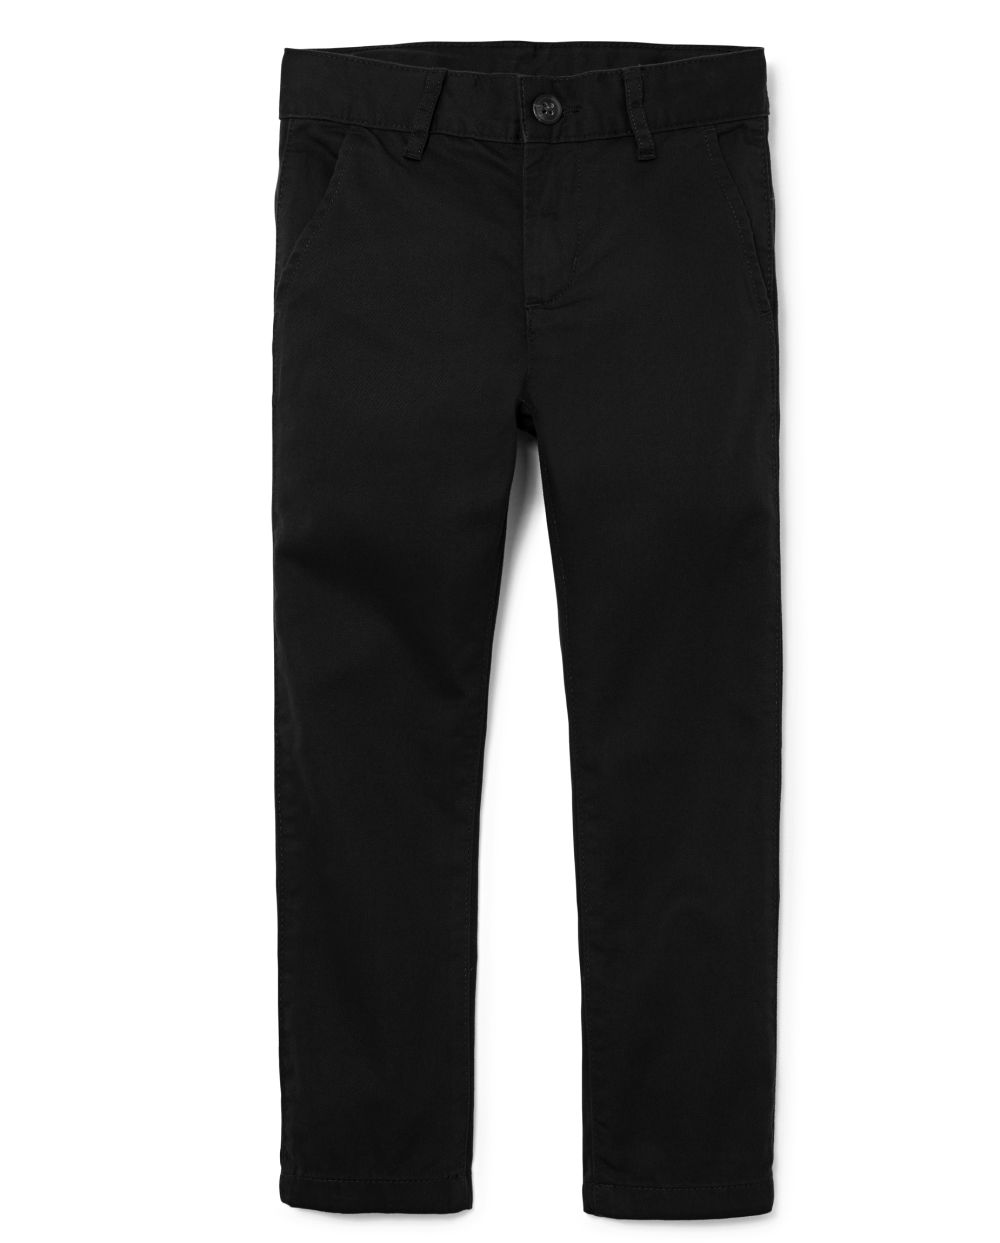 Boys Uniform Stain And Wrinkle Resistant Stretch Skinny Perfect Pants